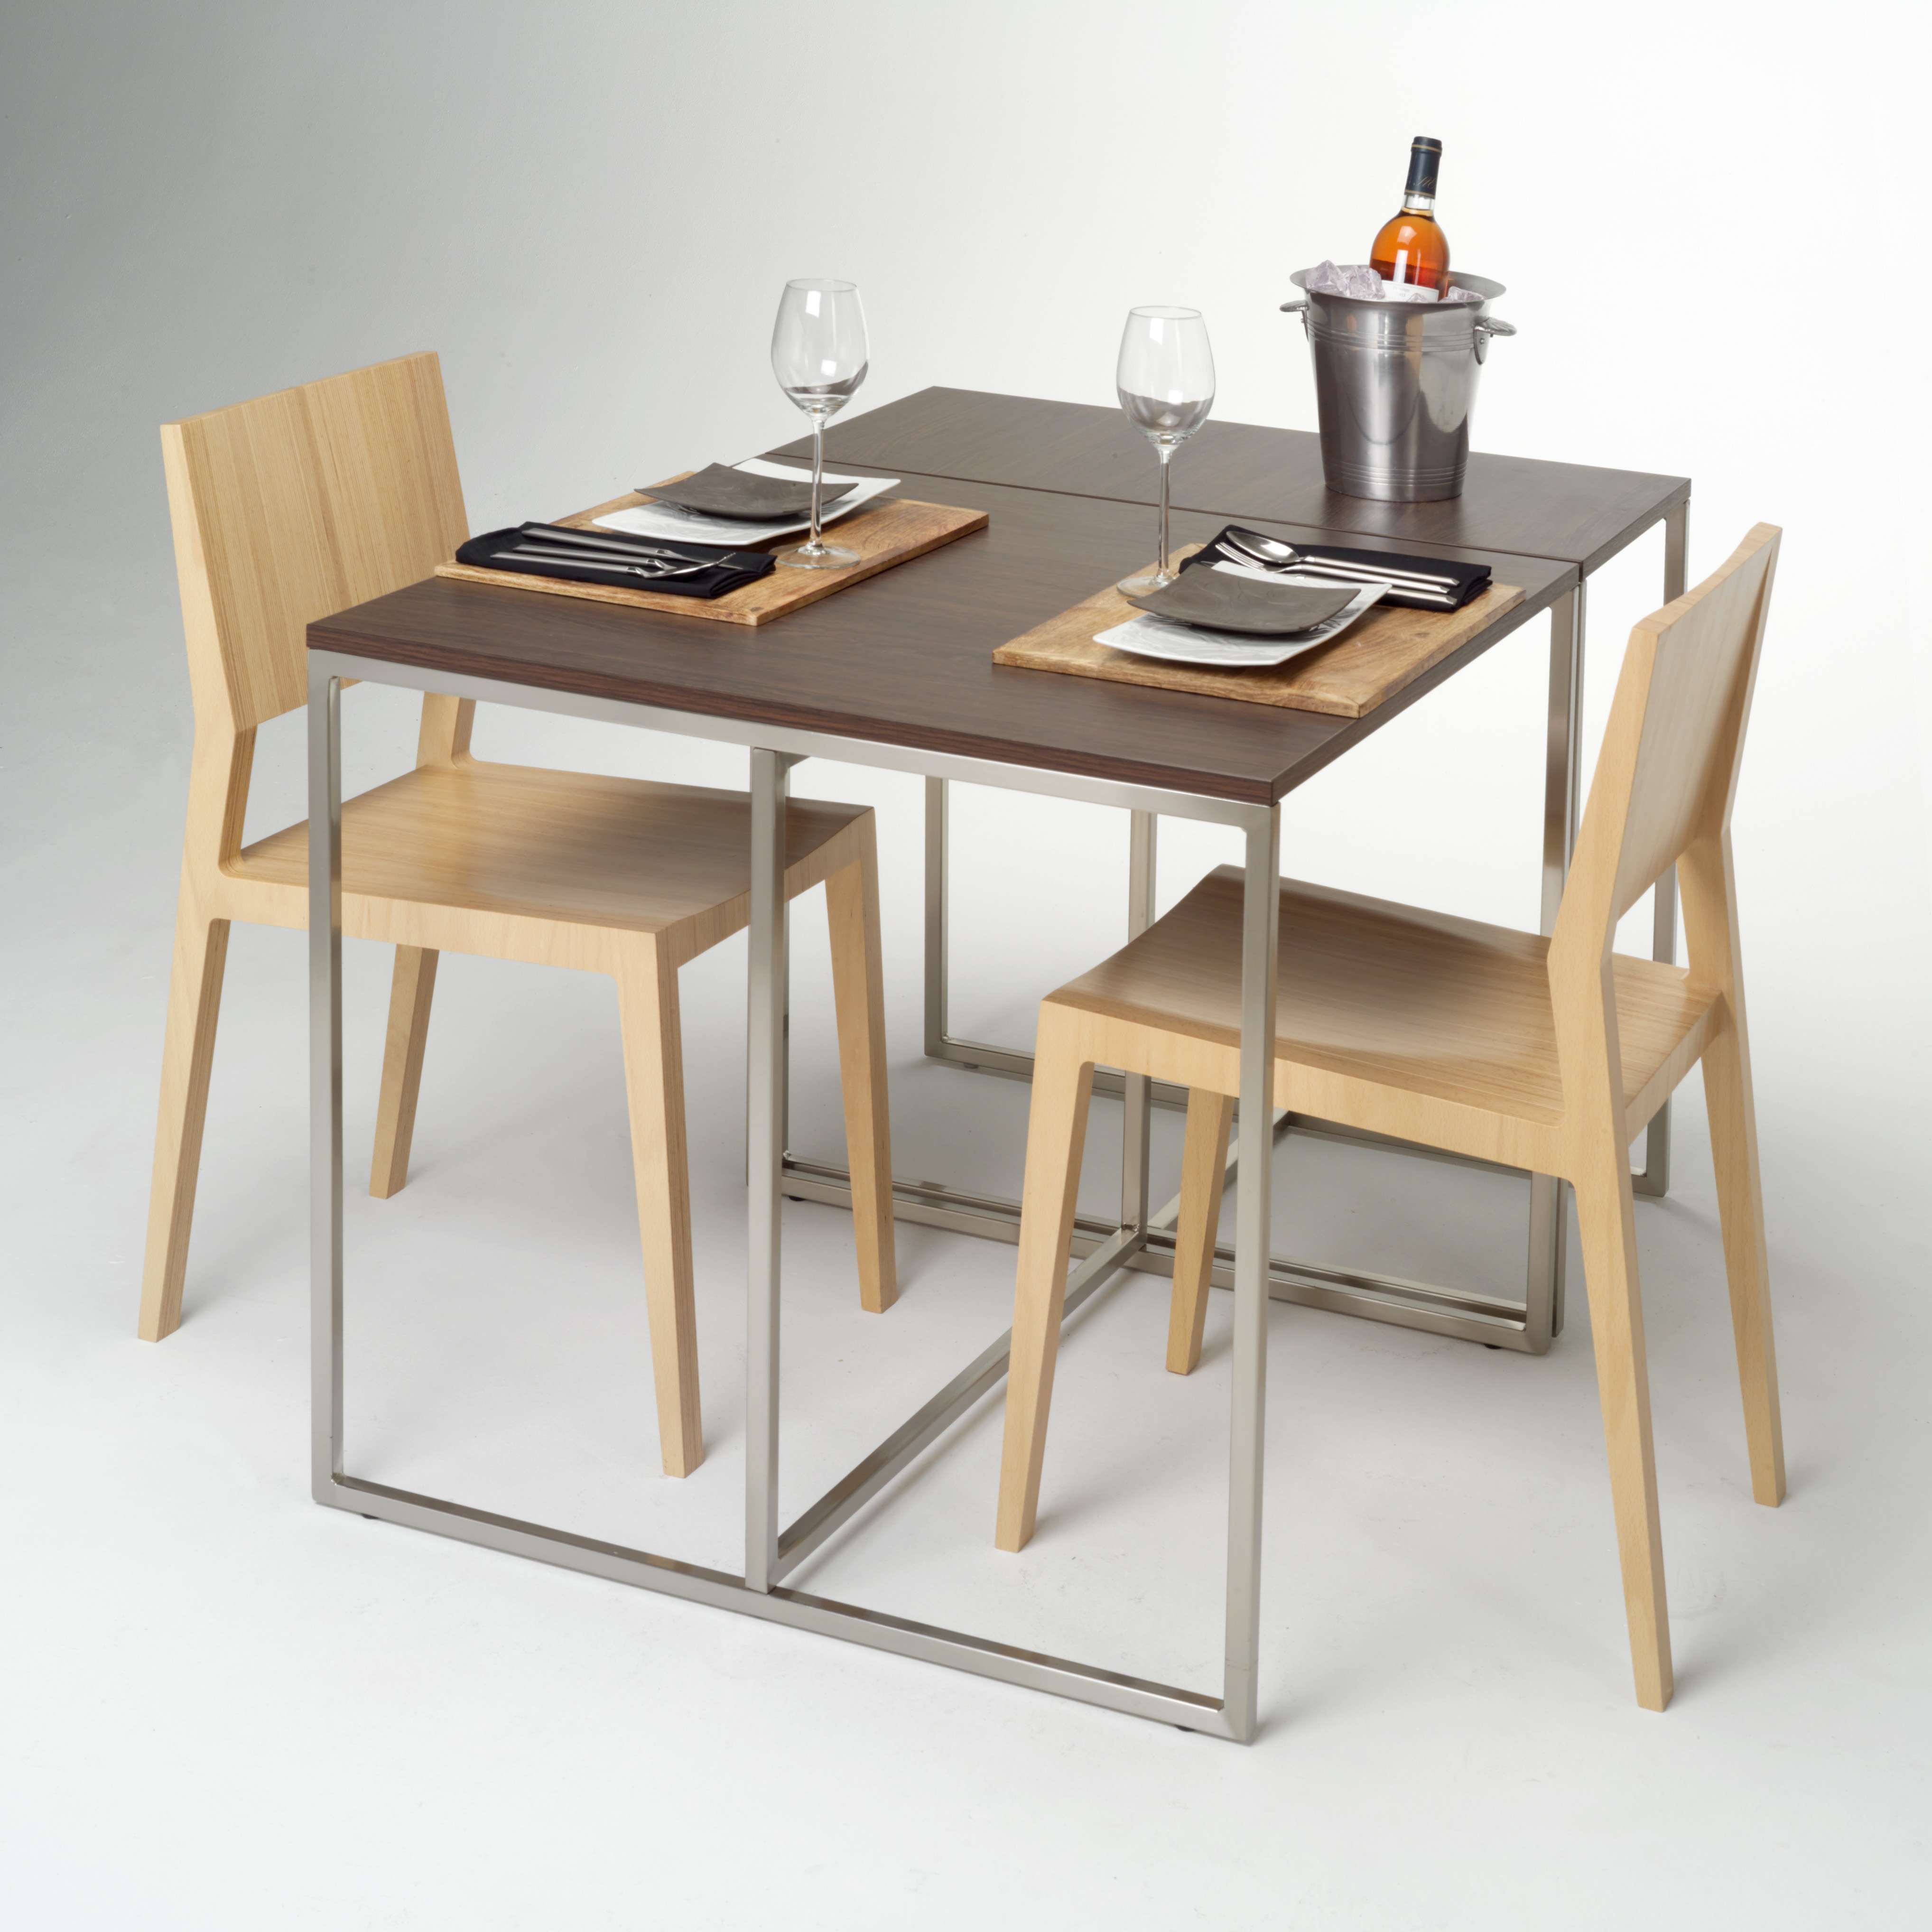 dining tables and chairs photo - 1